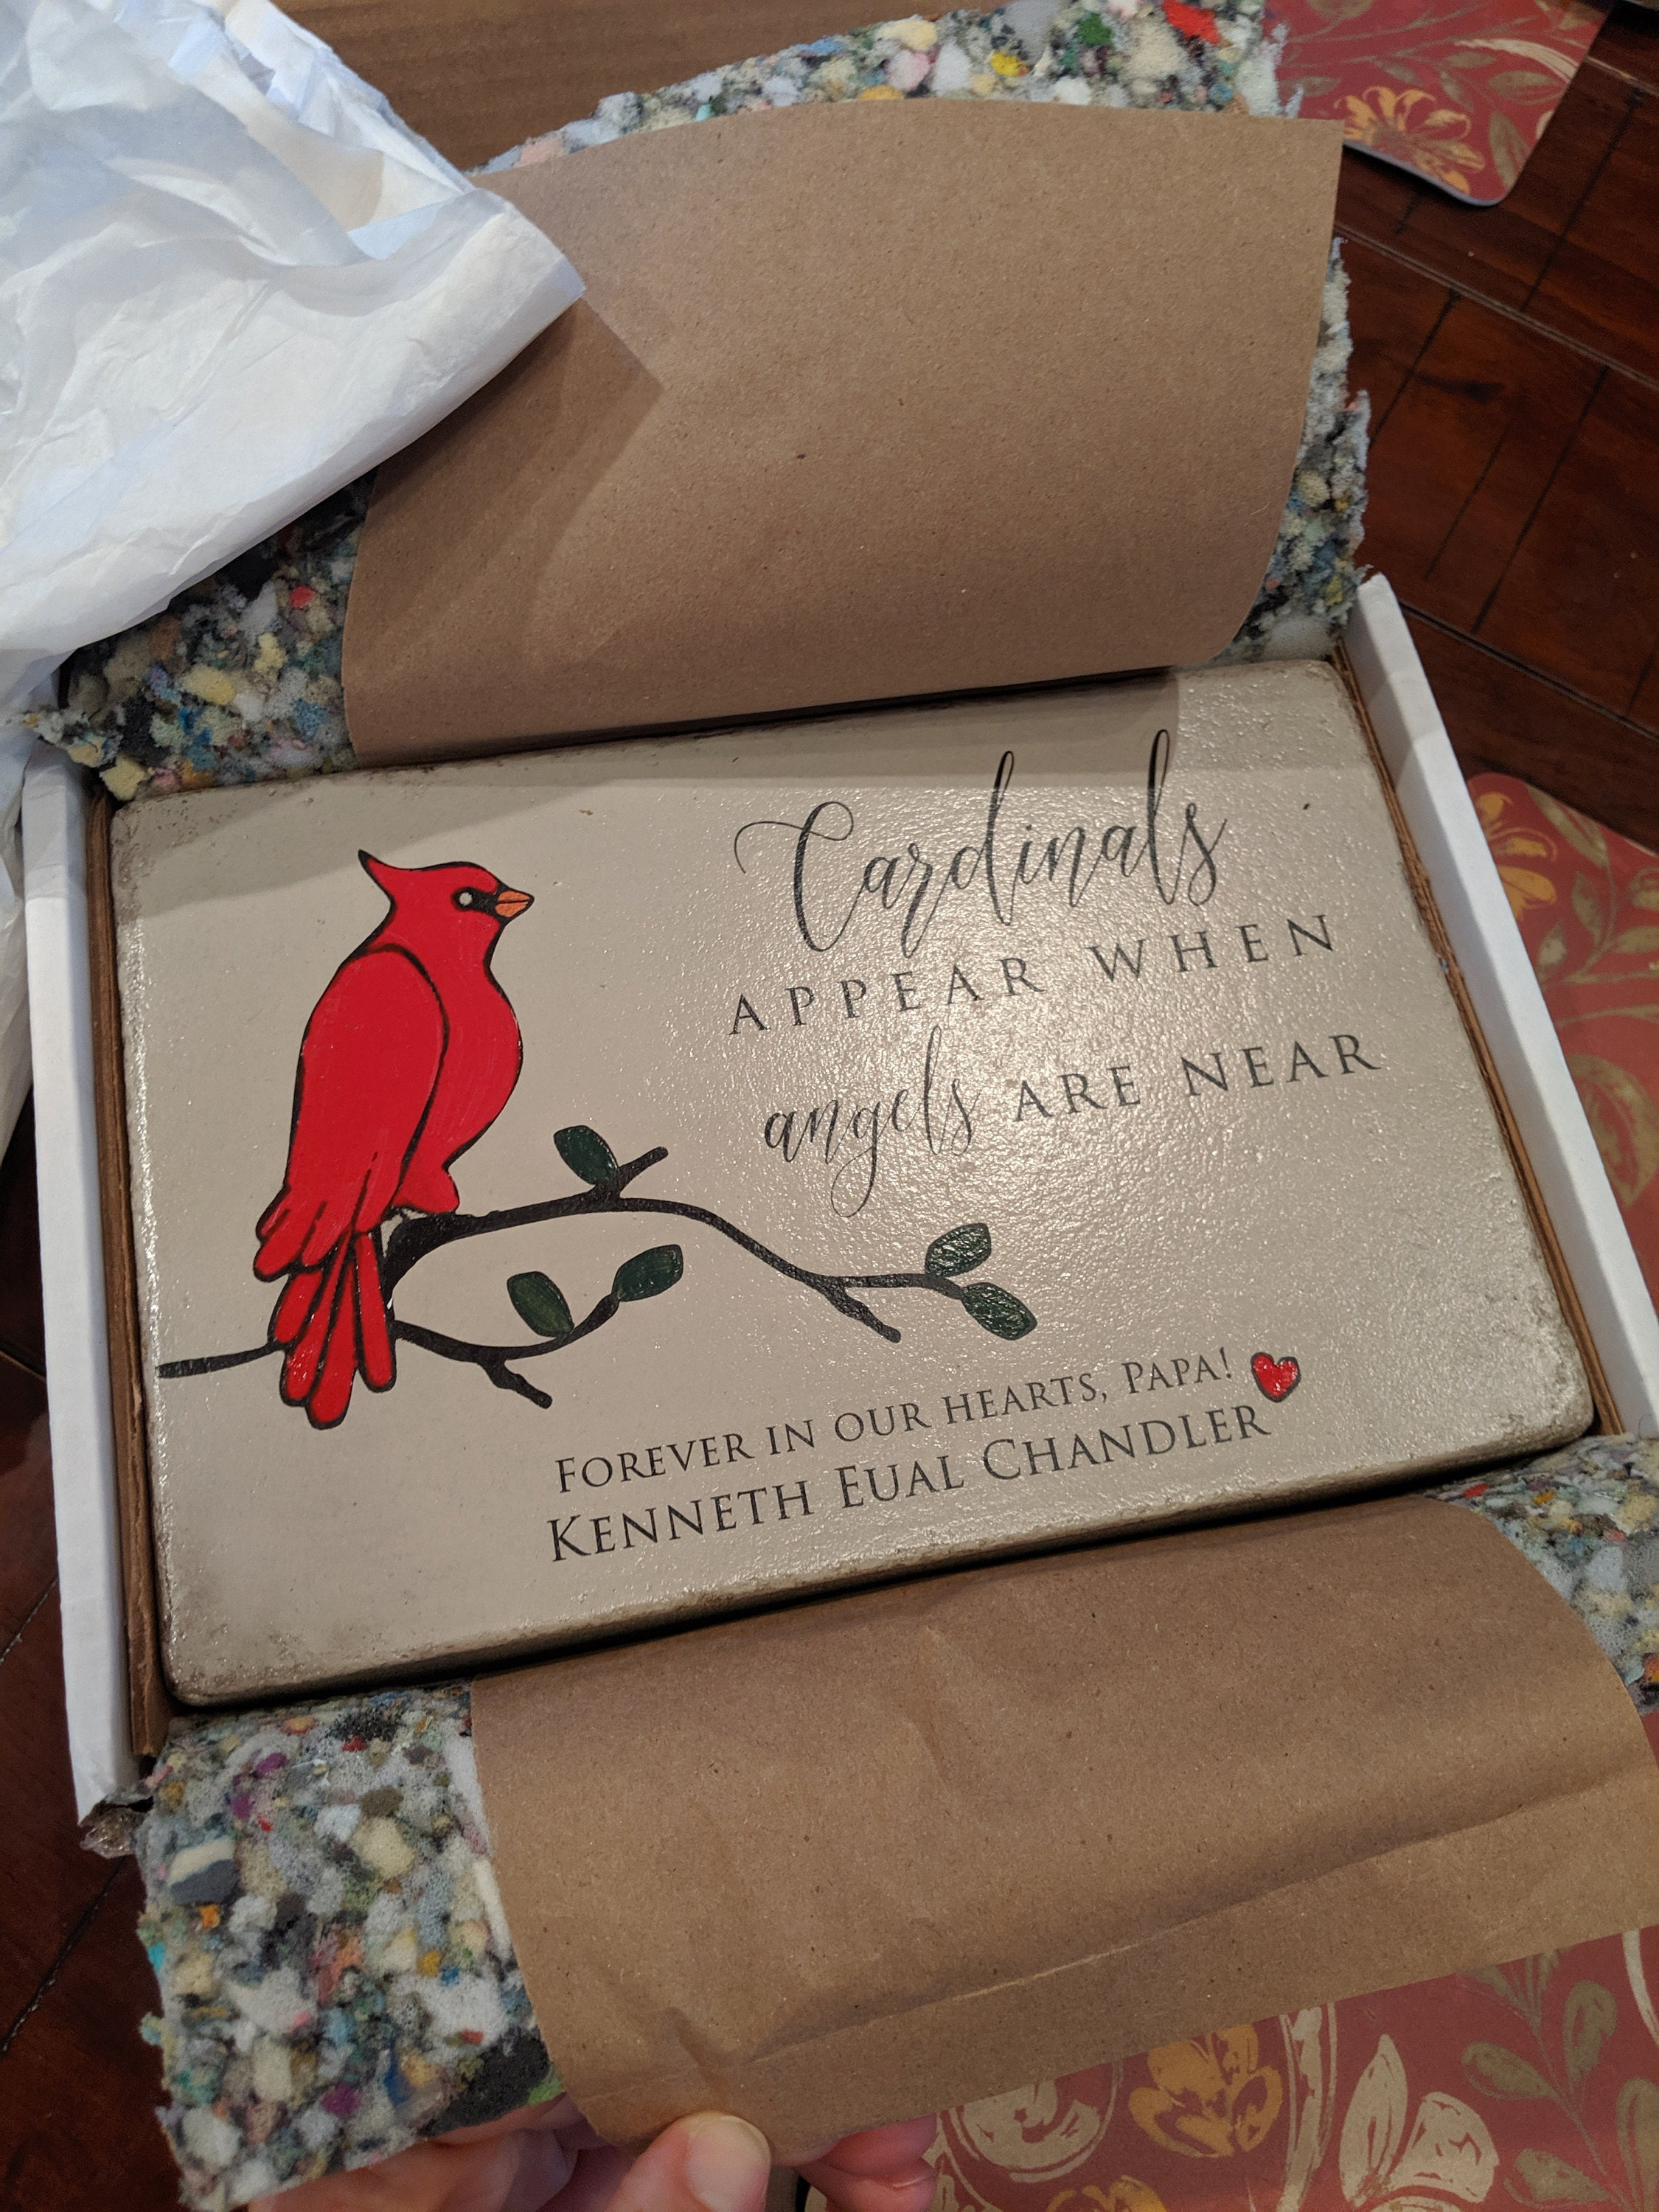 Kelly Chandler added a photo of their purchase